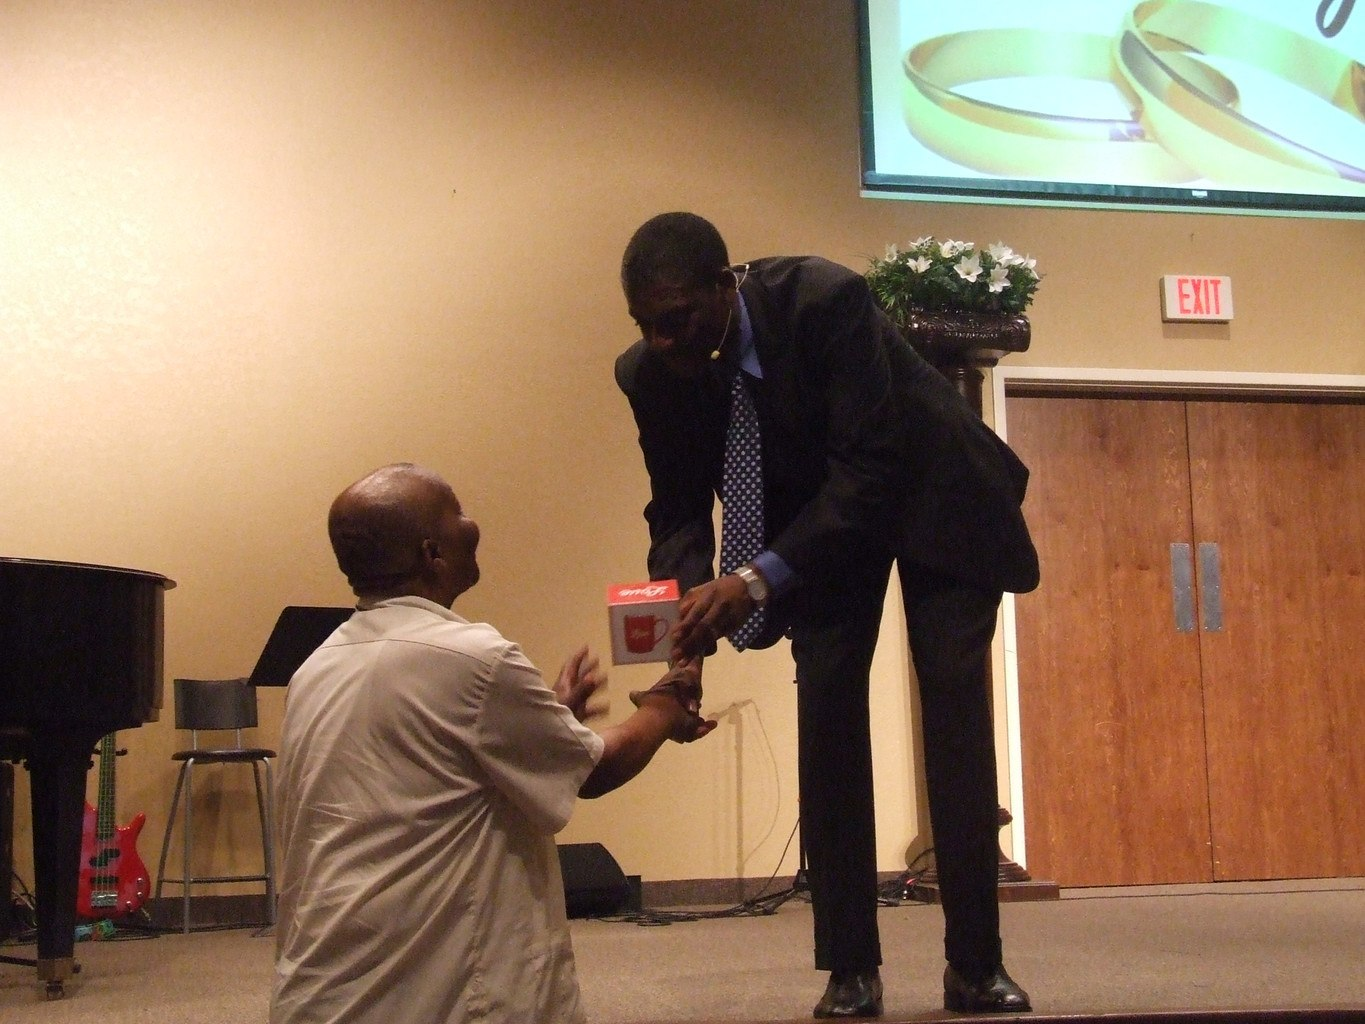 Pastor handing a gift to a man